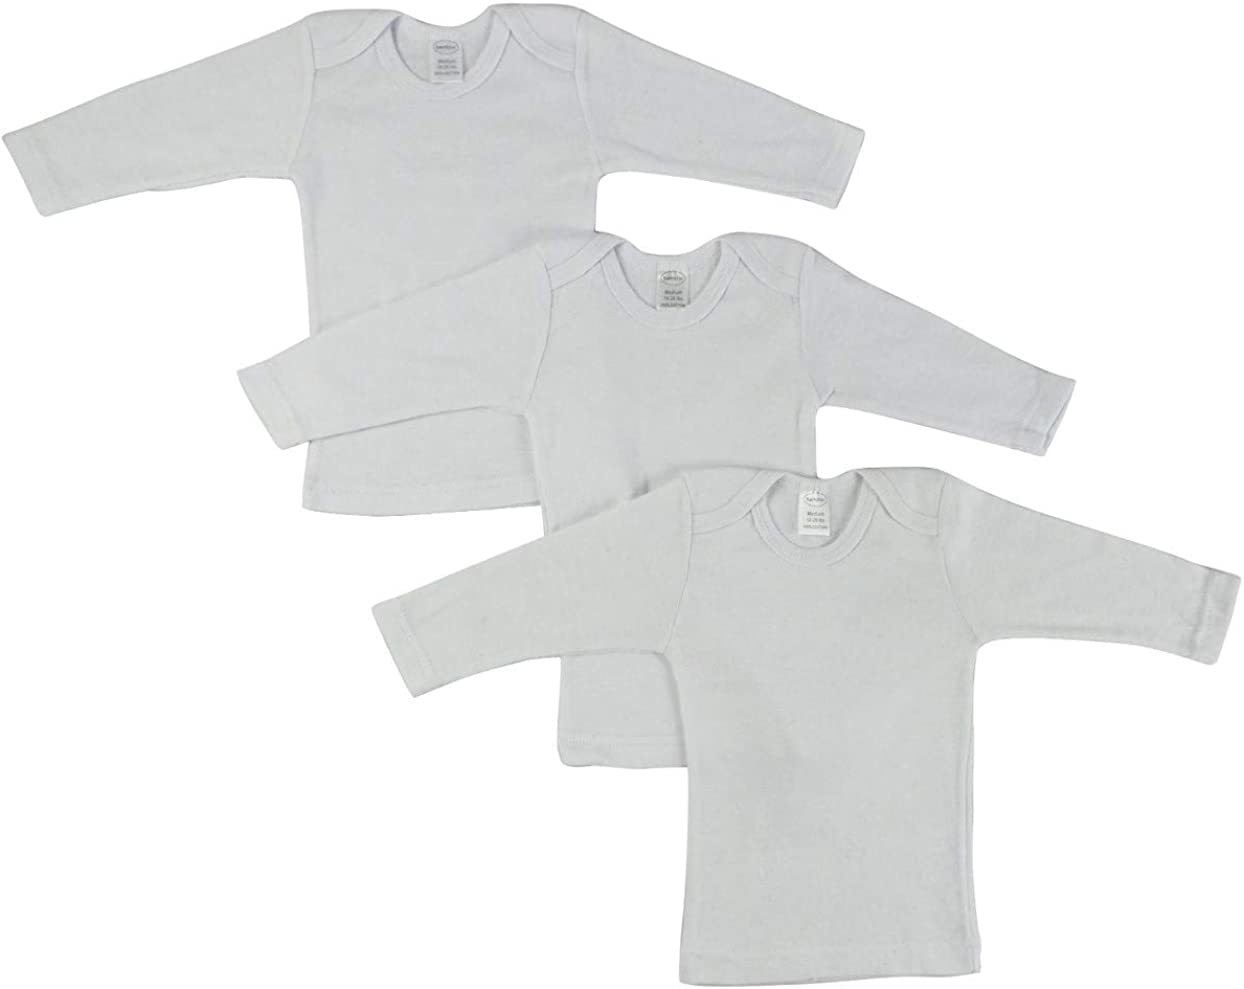 GI District Unisex Baby Short & Long Sleeve Lap Tee Shirts, 100% Cotton Rib Knit 3-Pack or 6-Pack